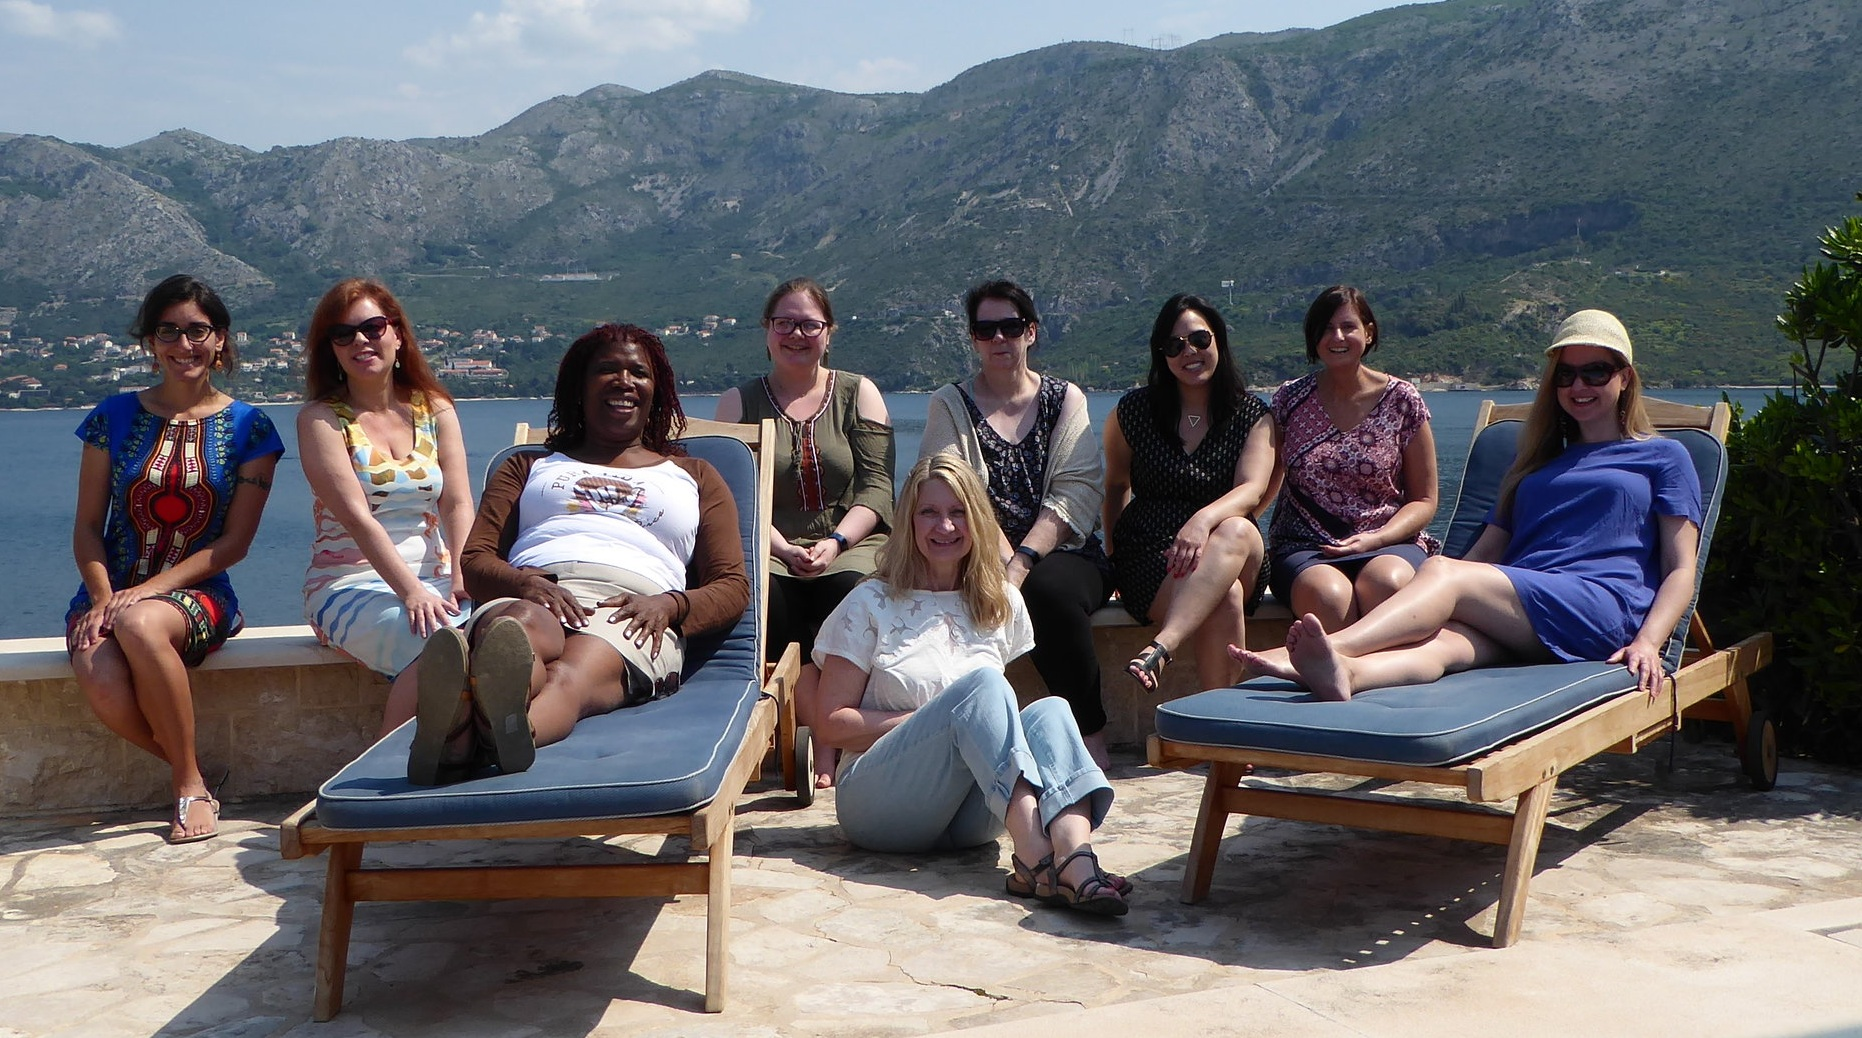 Relaxing after some serious writing sprints in Cavtat, Croatia.